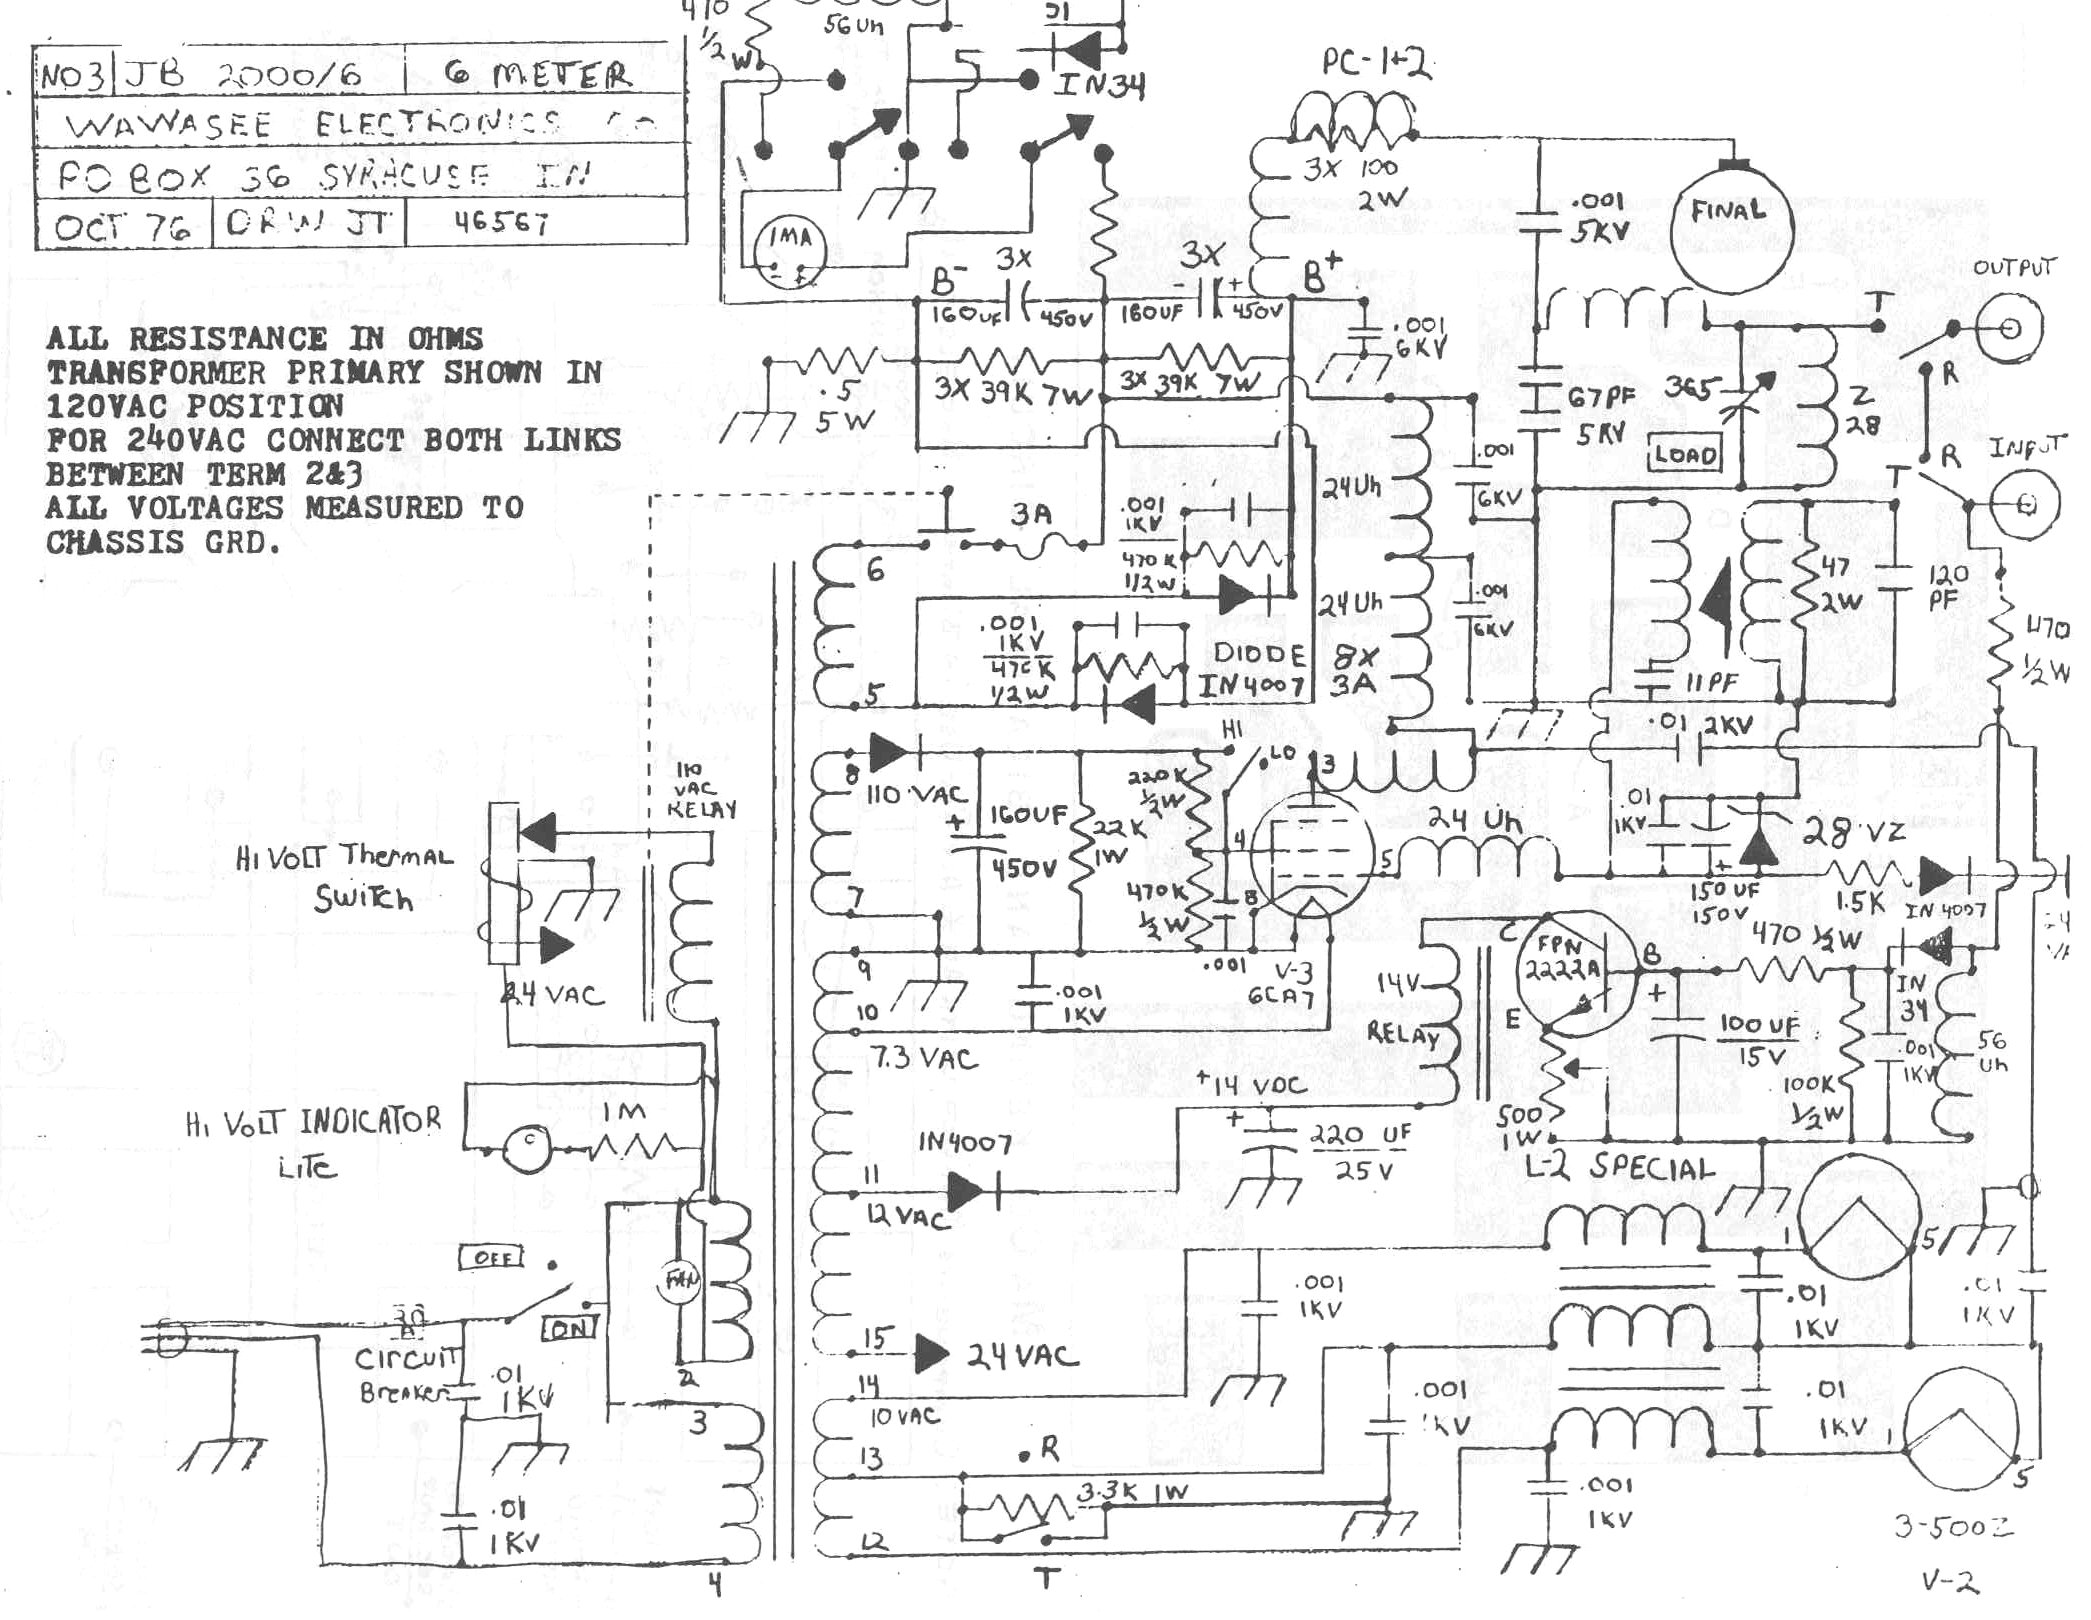 Simple Linear Amplifier Schematics Electrical Wiring Diagrams Home Radio Bly94 100w Rf Power Jb 2000 Circuit Connection Diagram U2022 Class A